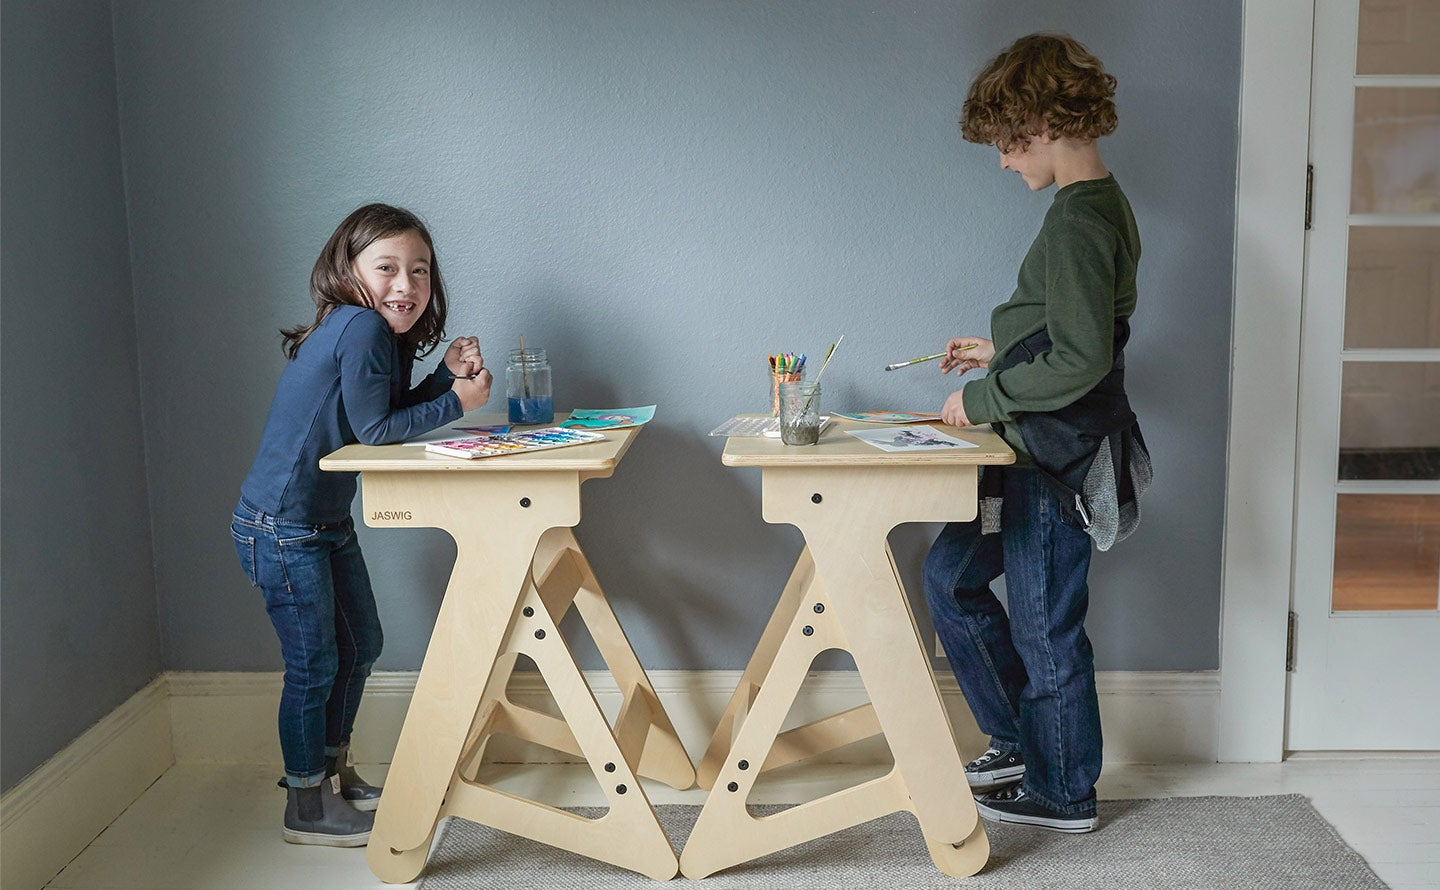 fully jaswig my first standup kids desk kids jaswig and jaswig nomad lifestyle photo_feat_v1.jpg